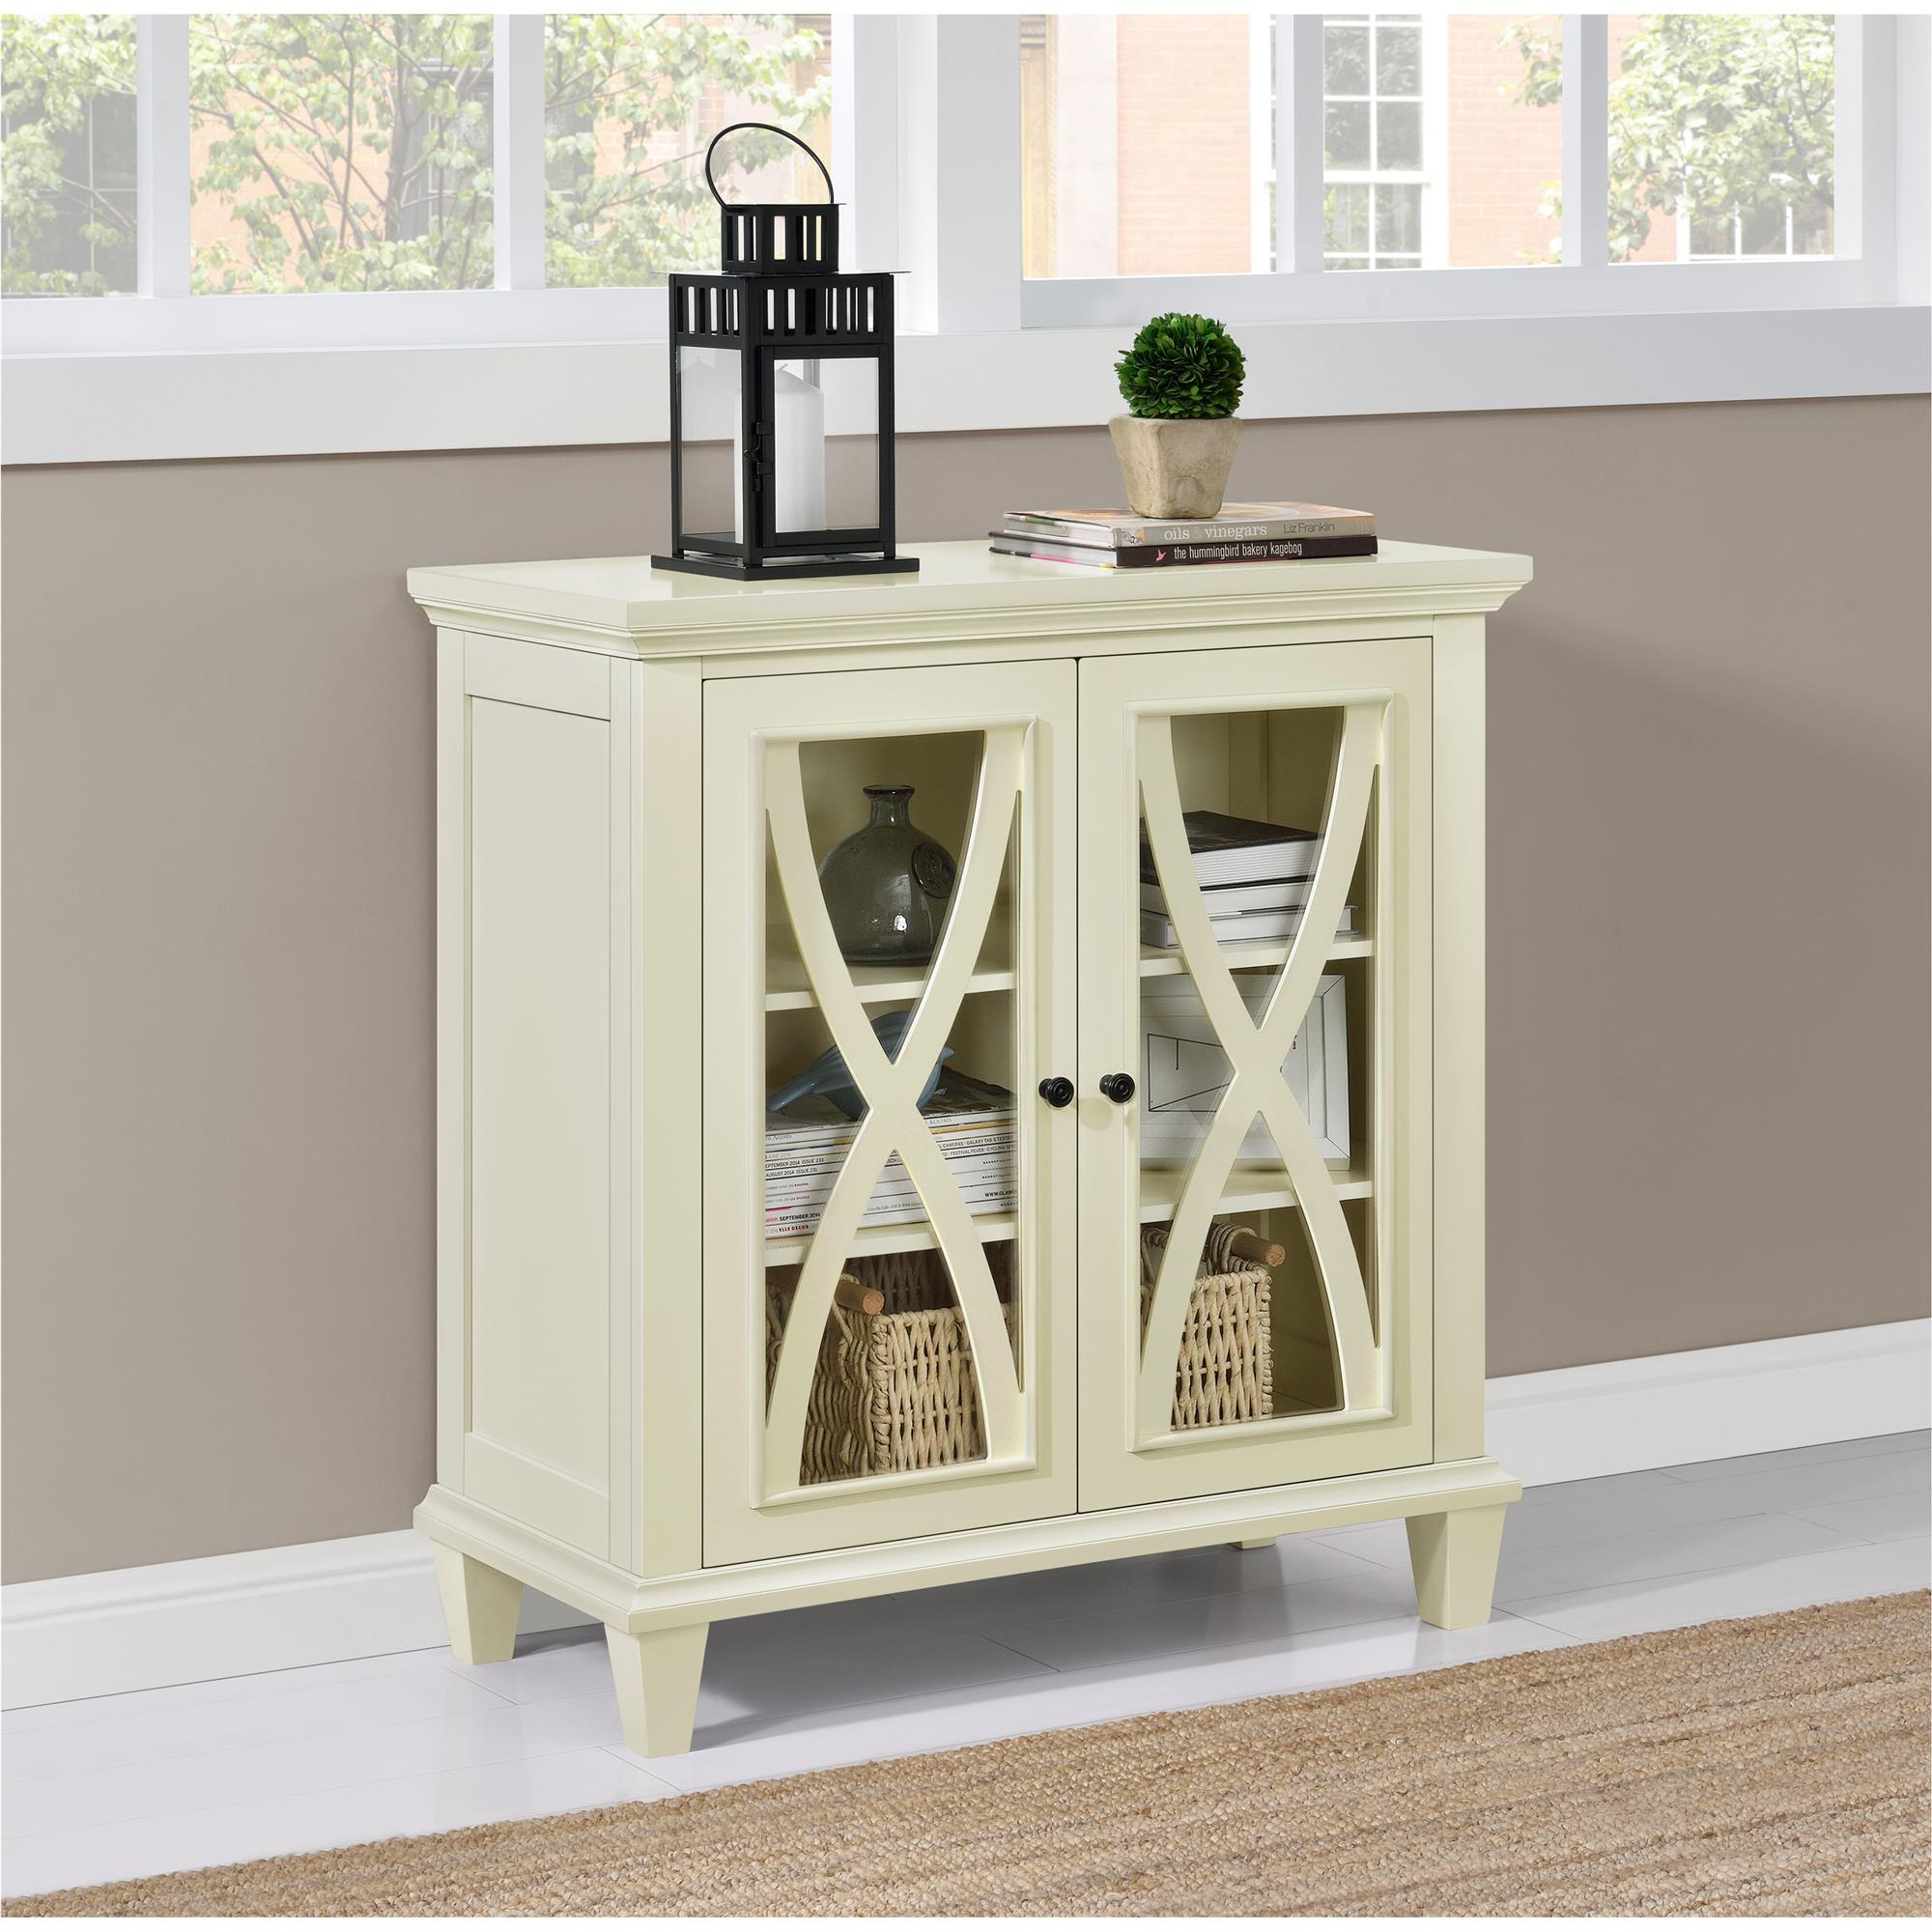 gorgeous two door accent cabinet mills trisha glossy ellington altra whitesburg yearwood rosendale ameriwood double andover threshold target garrett walden white home phoebe